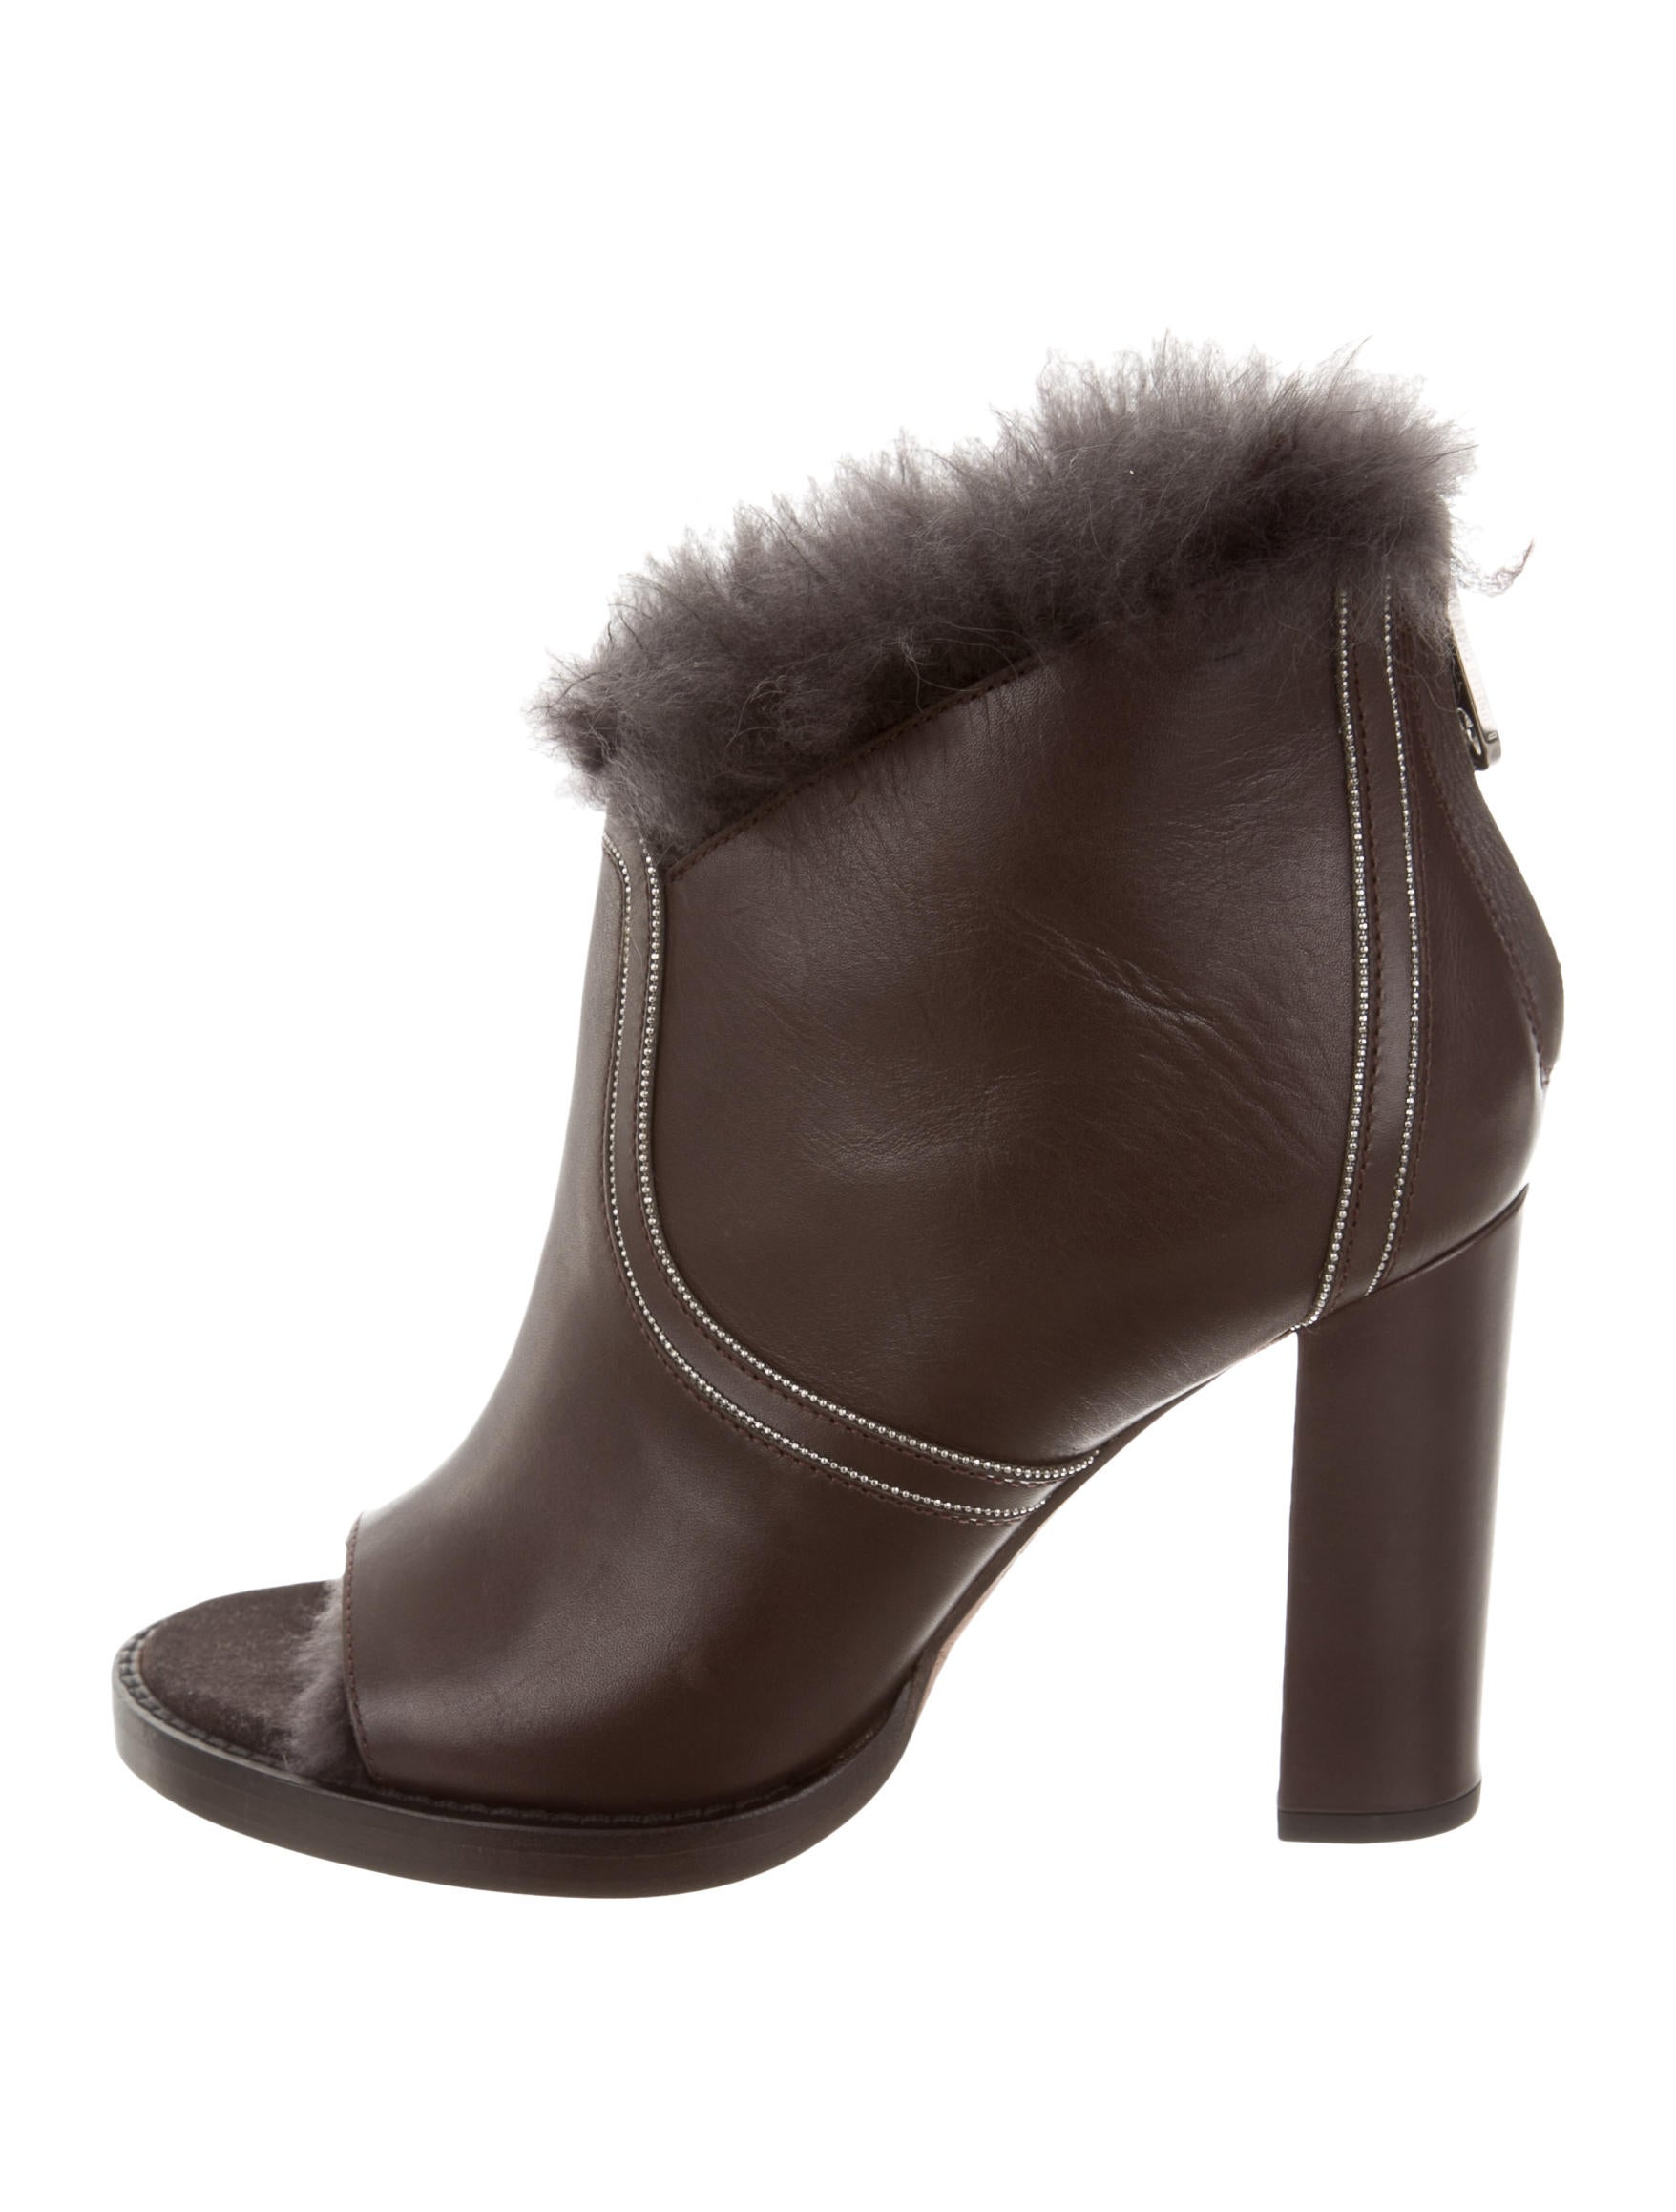 outlet with paypal order online Brunello Cucinelli Leather Buckle Ankle Boots discount Cheapest cheap price discount authentic free shipping sale cs3r6r8bg1